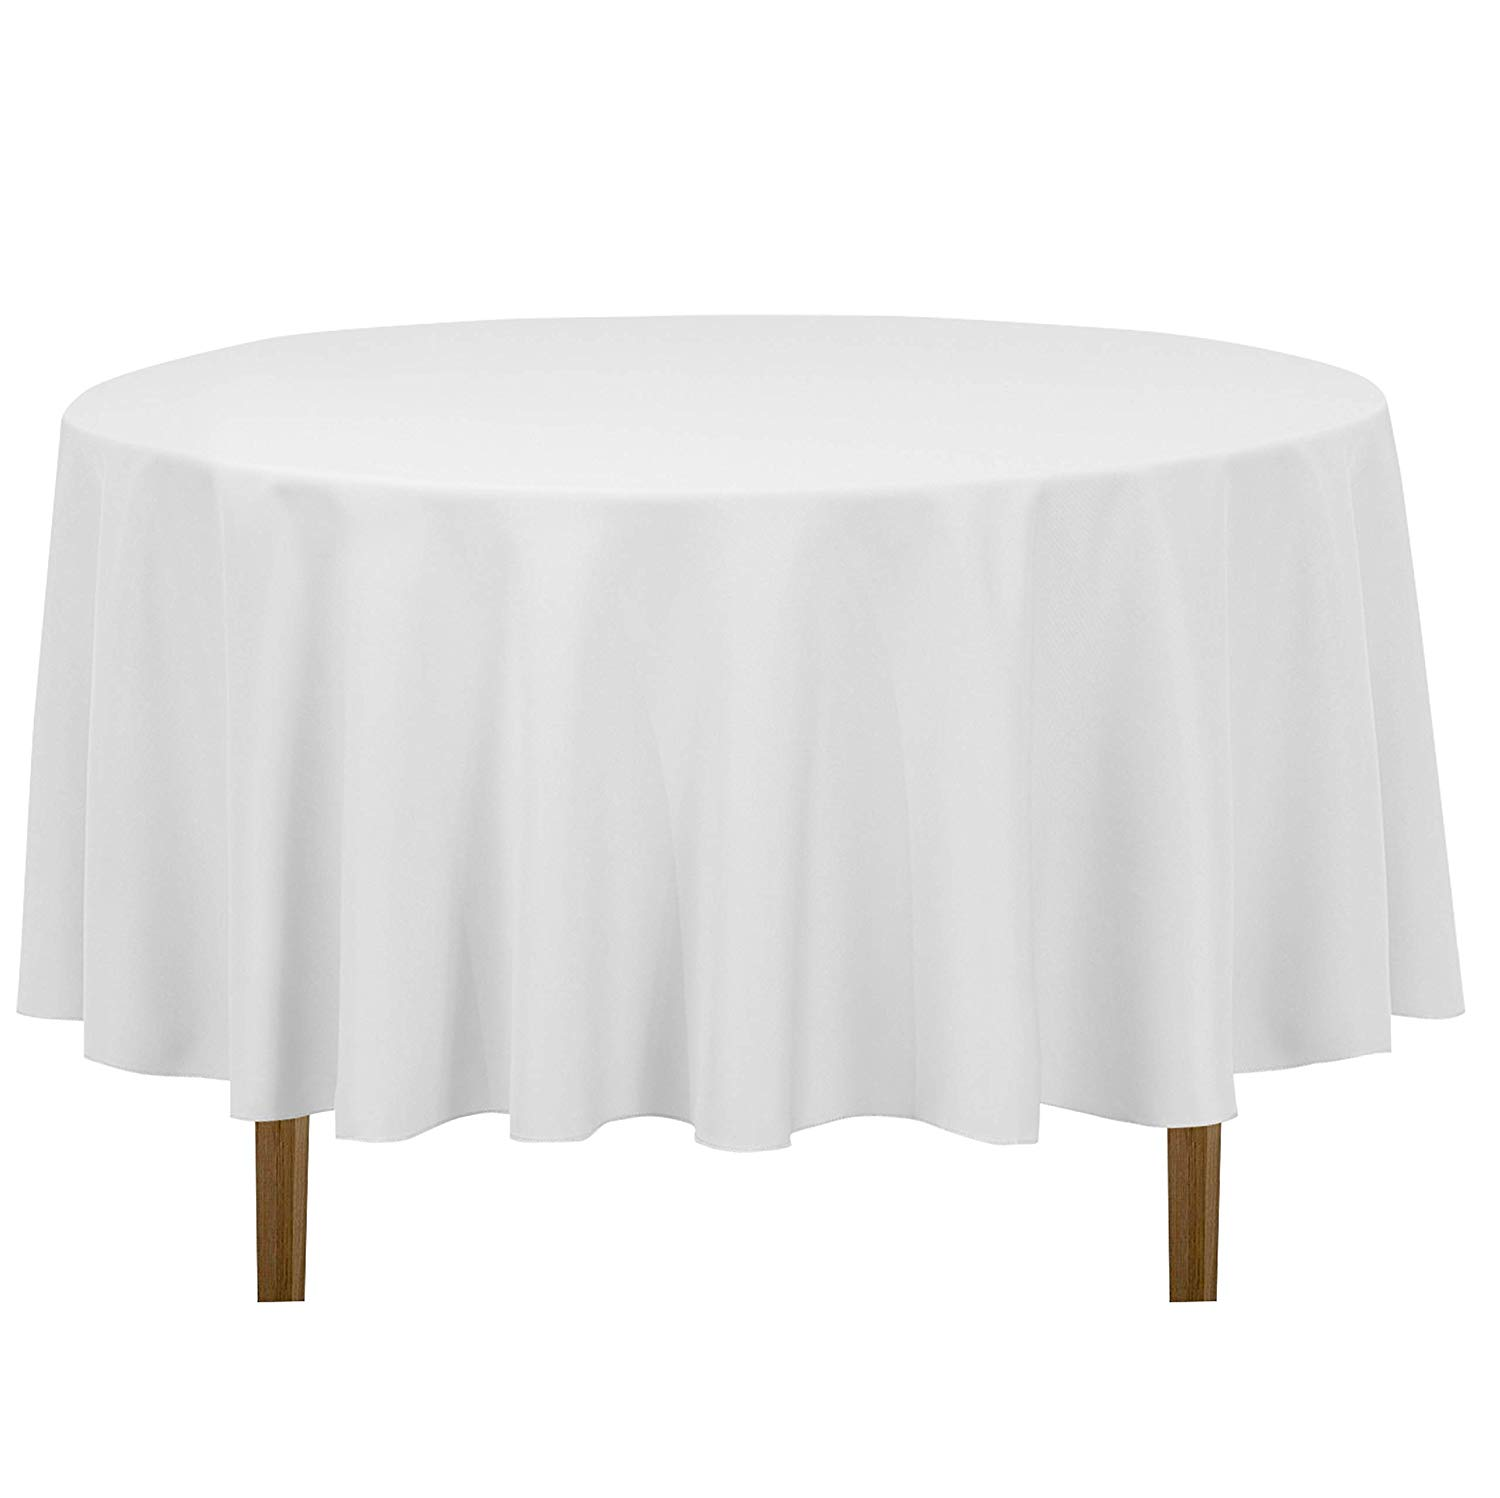 linentablecloth inch round polyester tablecloth accent table cloths white home kitchen world furniture eileen gray side small mosaic patio martin garden sets vintage with drawer